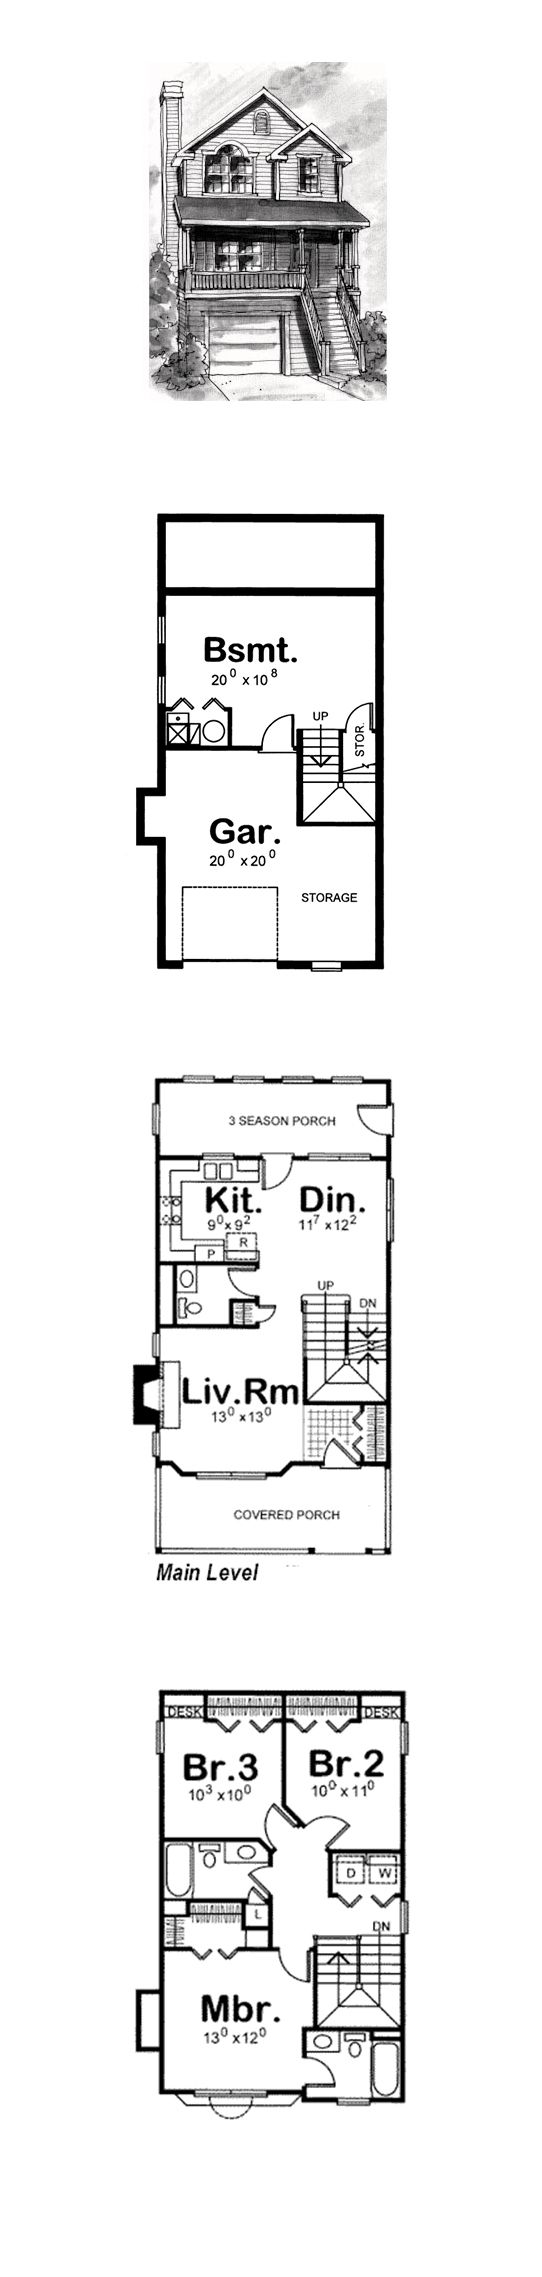 Coastal House Plan 68865 | Total Living Area: 1297 sq. ft., 3 bedrooms and 2.5 bathrooms. #coastalhome